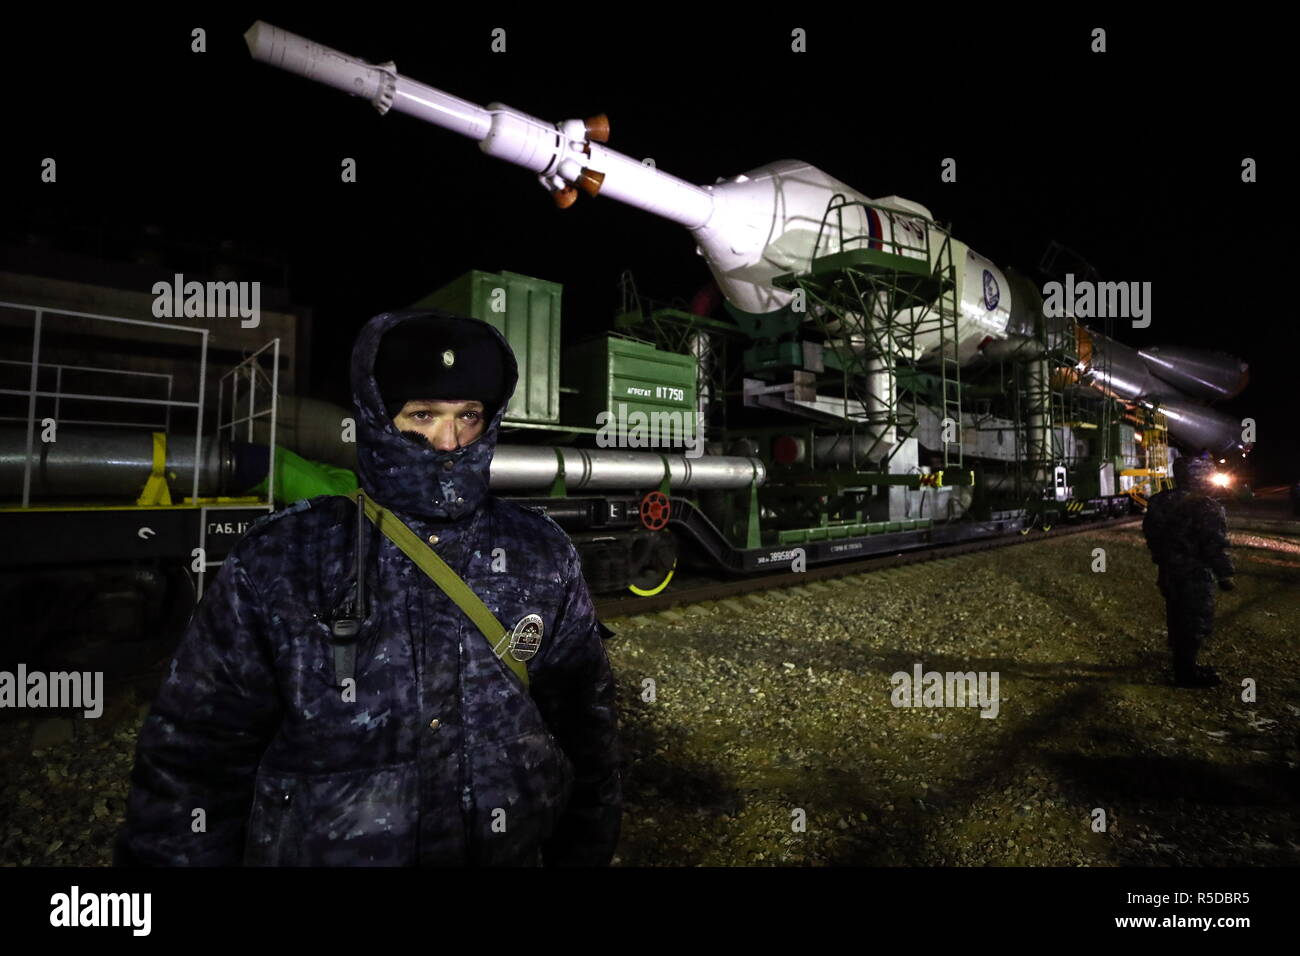 Kazakhstan. 01st Dec, 2018. KAZAKHSTAN - DECEMBER 1, 2018: Armed police stand guard as a Soyuz-FG rocket booster carrying the Soyuz MS-11 spacecraft is transported from an assembling facility to the launch pad at the Baikonur Cosmodrome. The launch of the Soyuz MS-11 spacecraft to the International Space Station (ISS) is scheduled for December 3, 2018 at 14:31 Moscow time. Valery Sharifulin/TASS Credit: ITAR-TASS News Agency/Alamy Live News - Stock Image